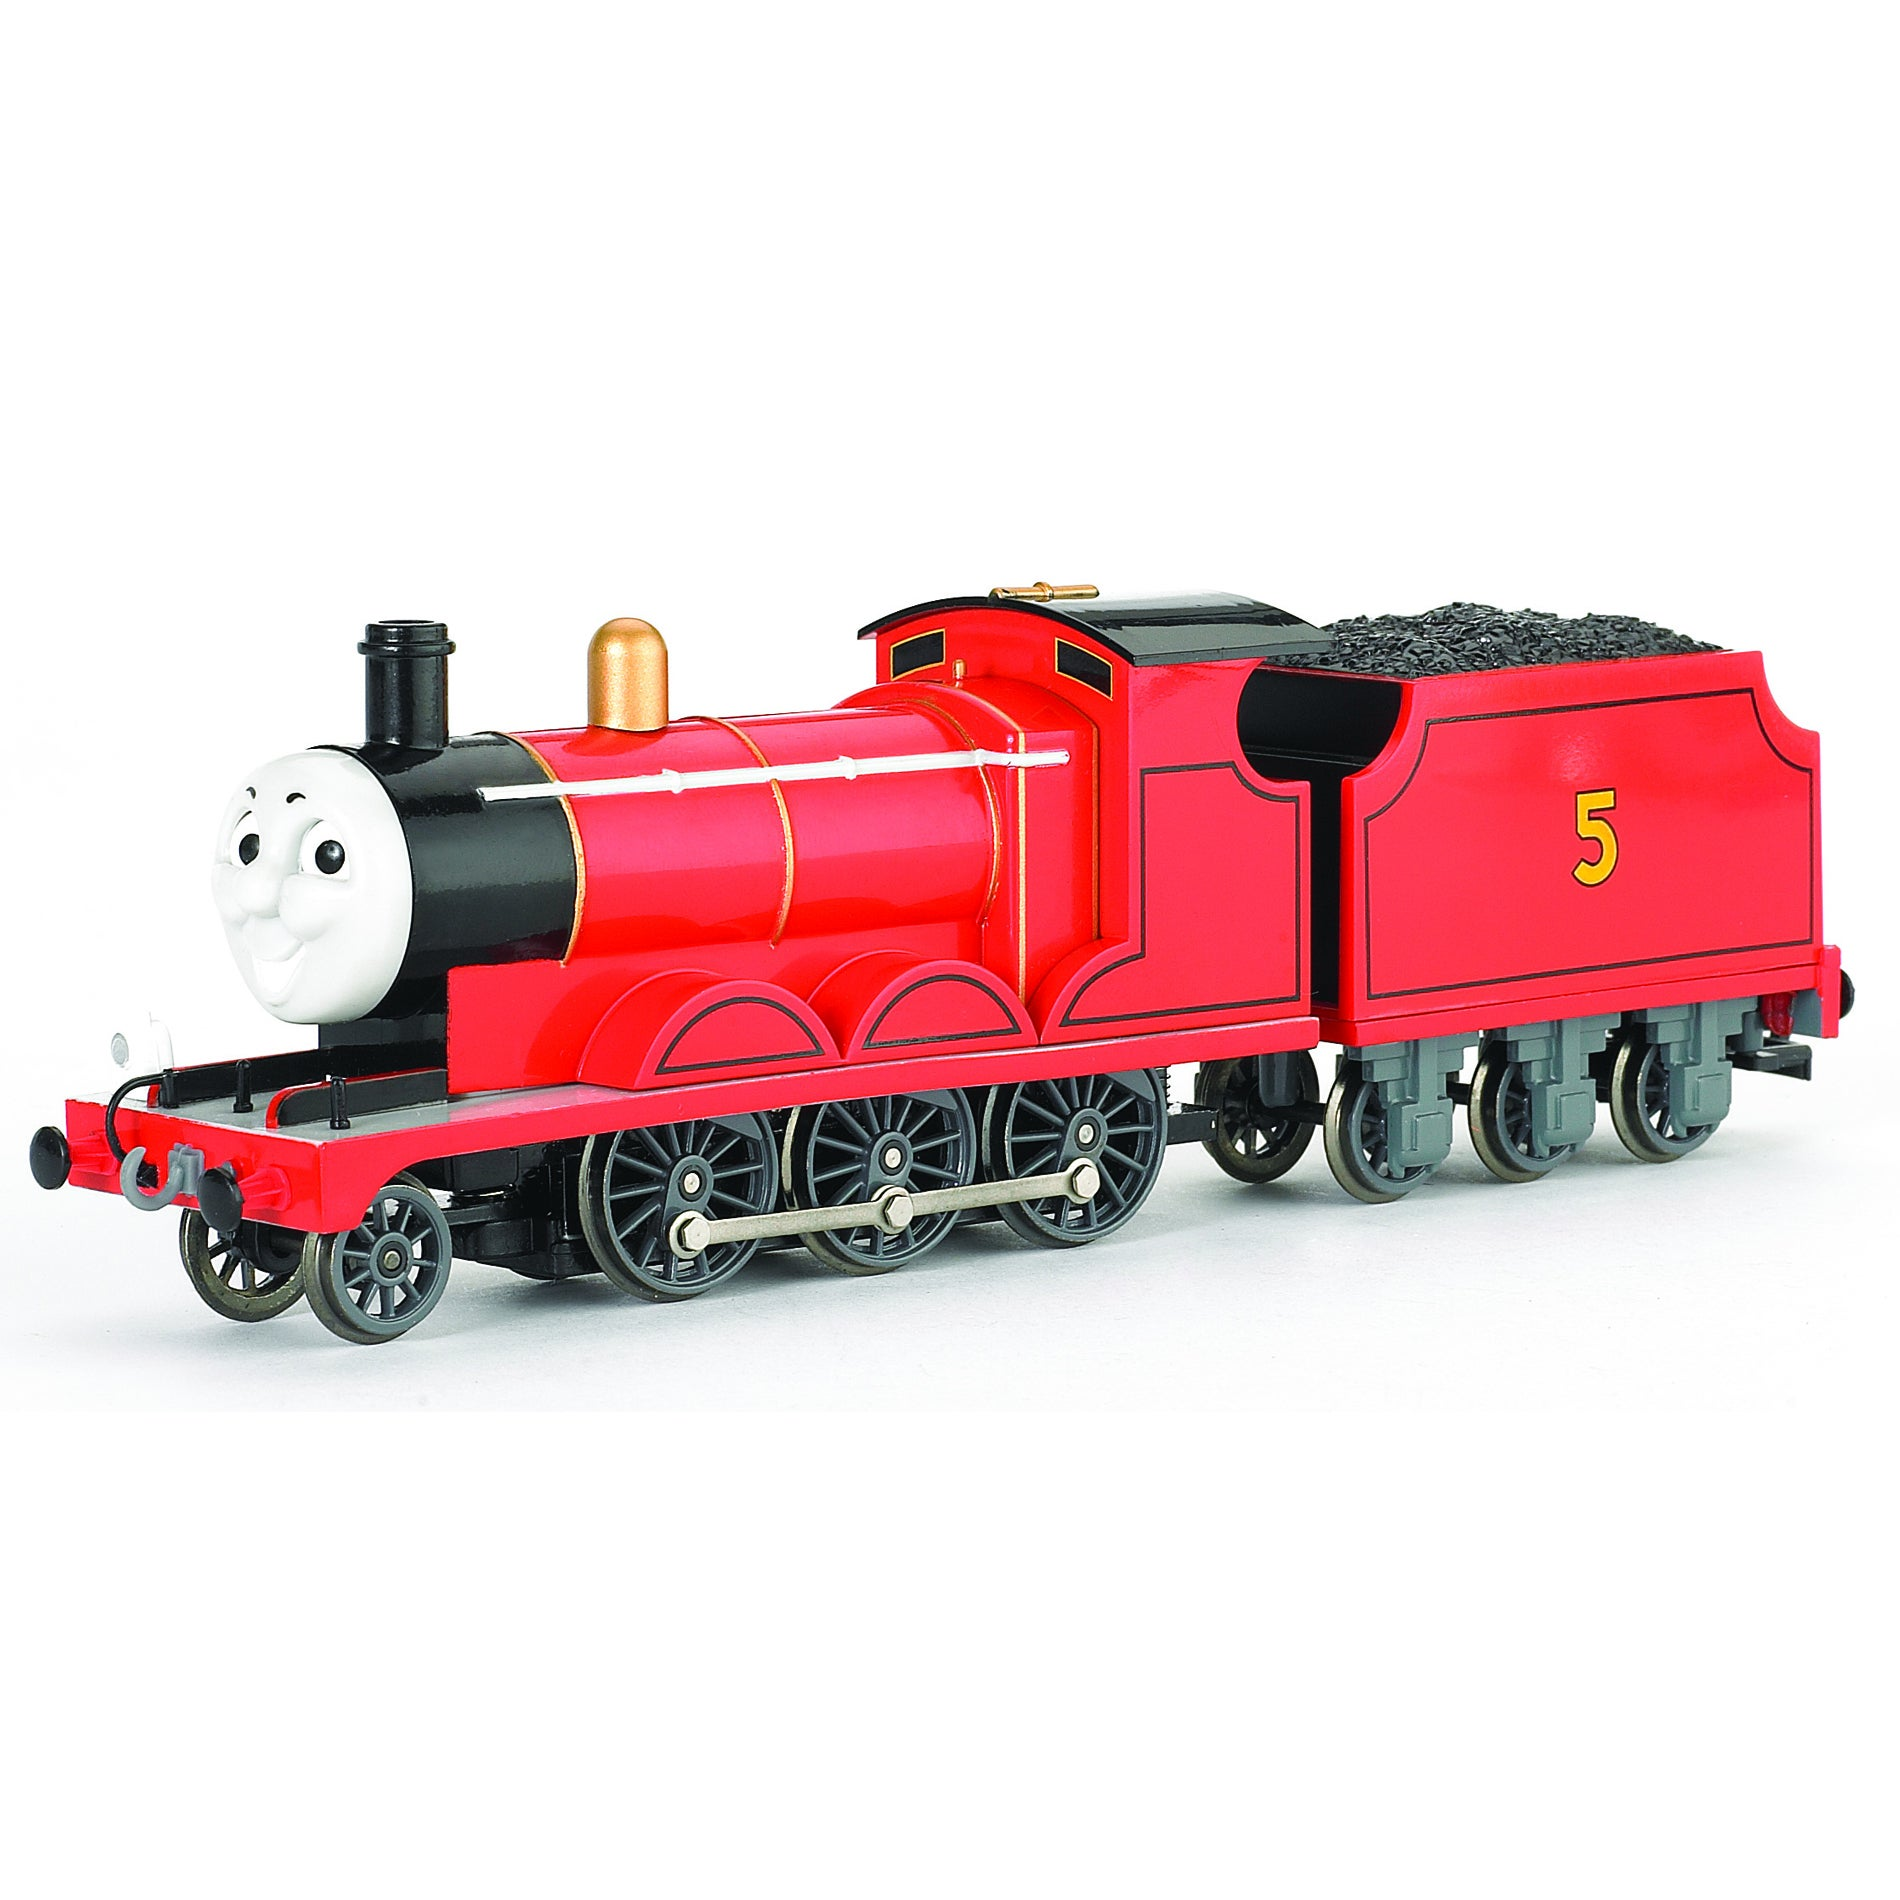 Thomas and Friends James with Moving Eyes Train Engine Toy